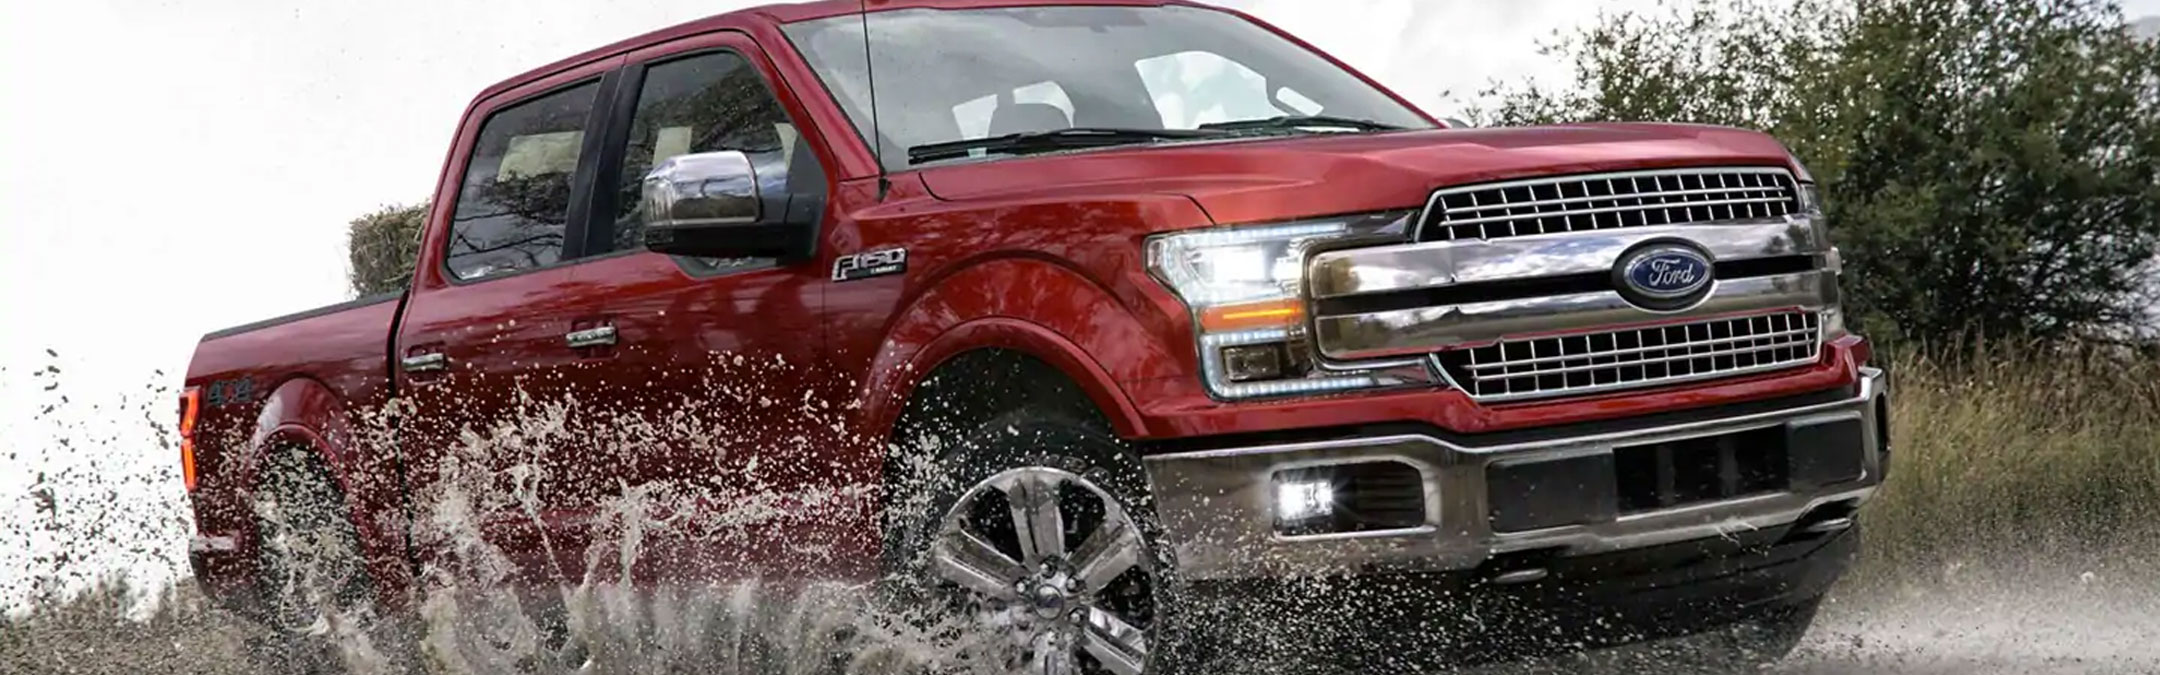 F 150 4 by 4 going through wet off road terrain